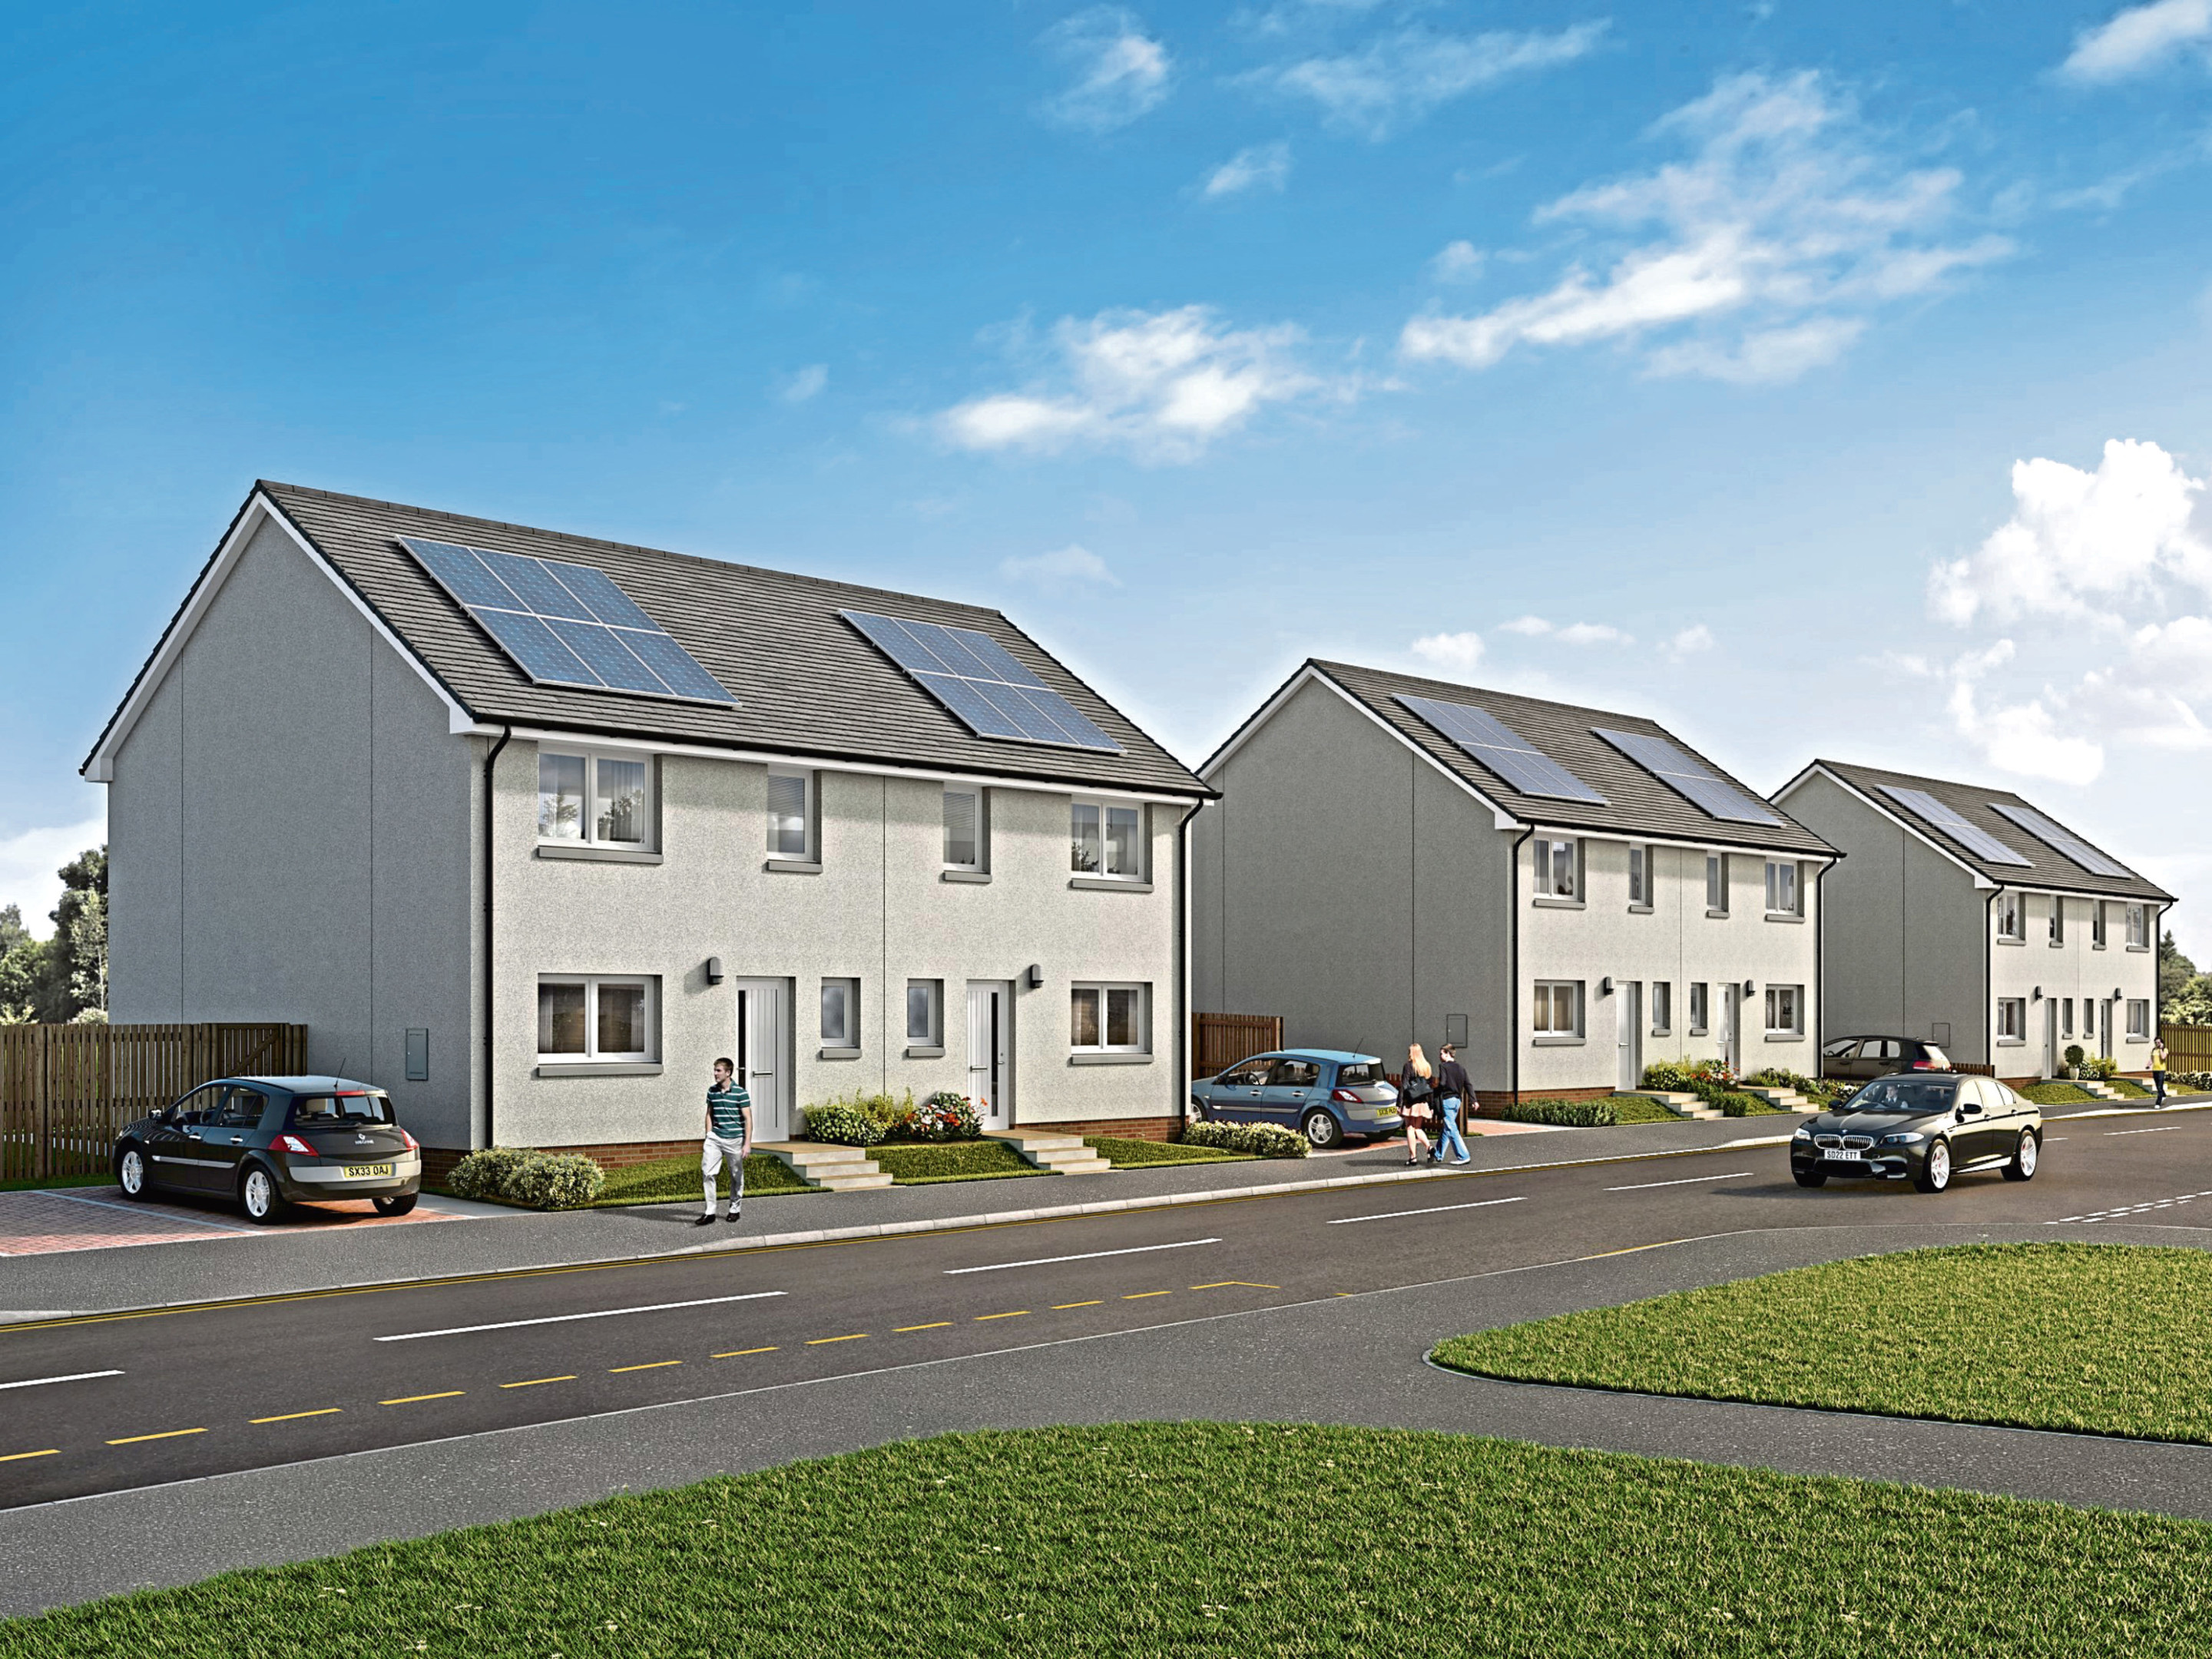 An artist's impression of the new Craigie Fields development in Dundee.